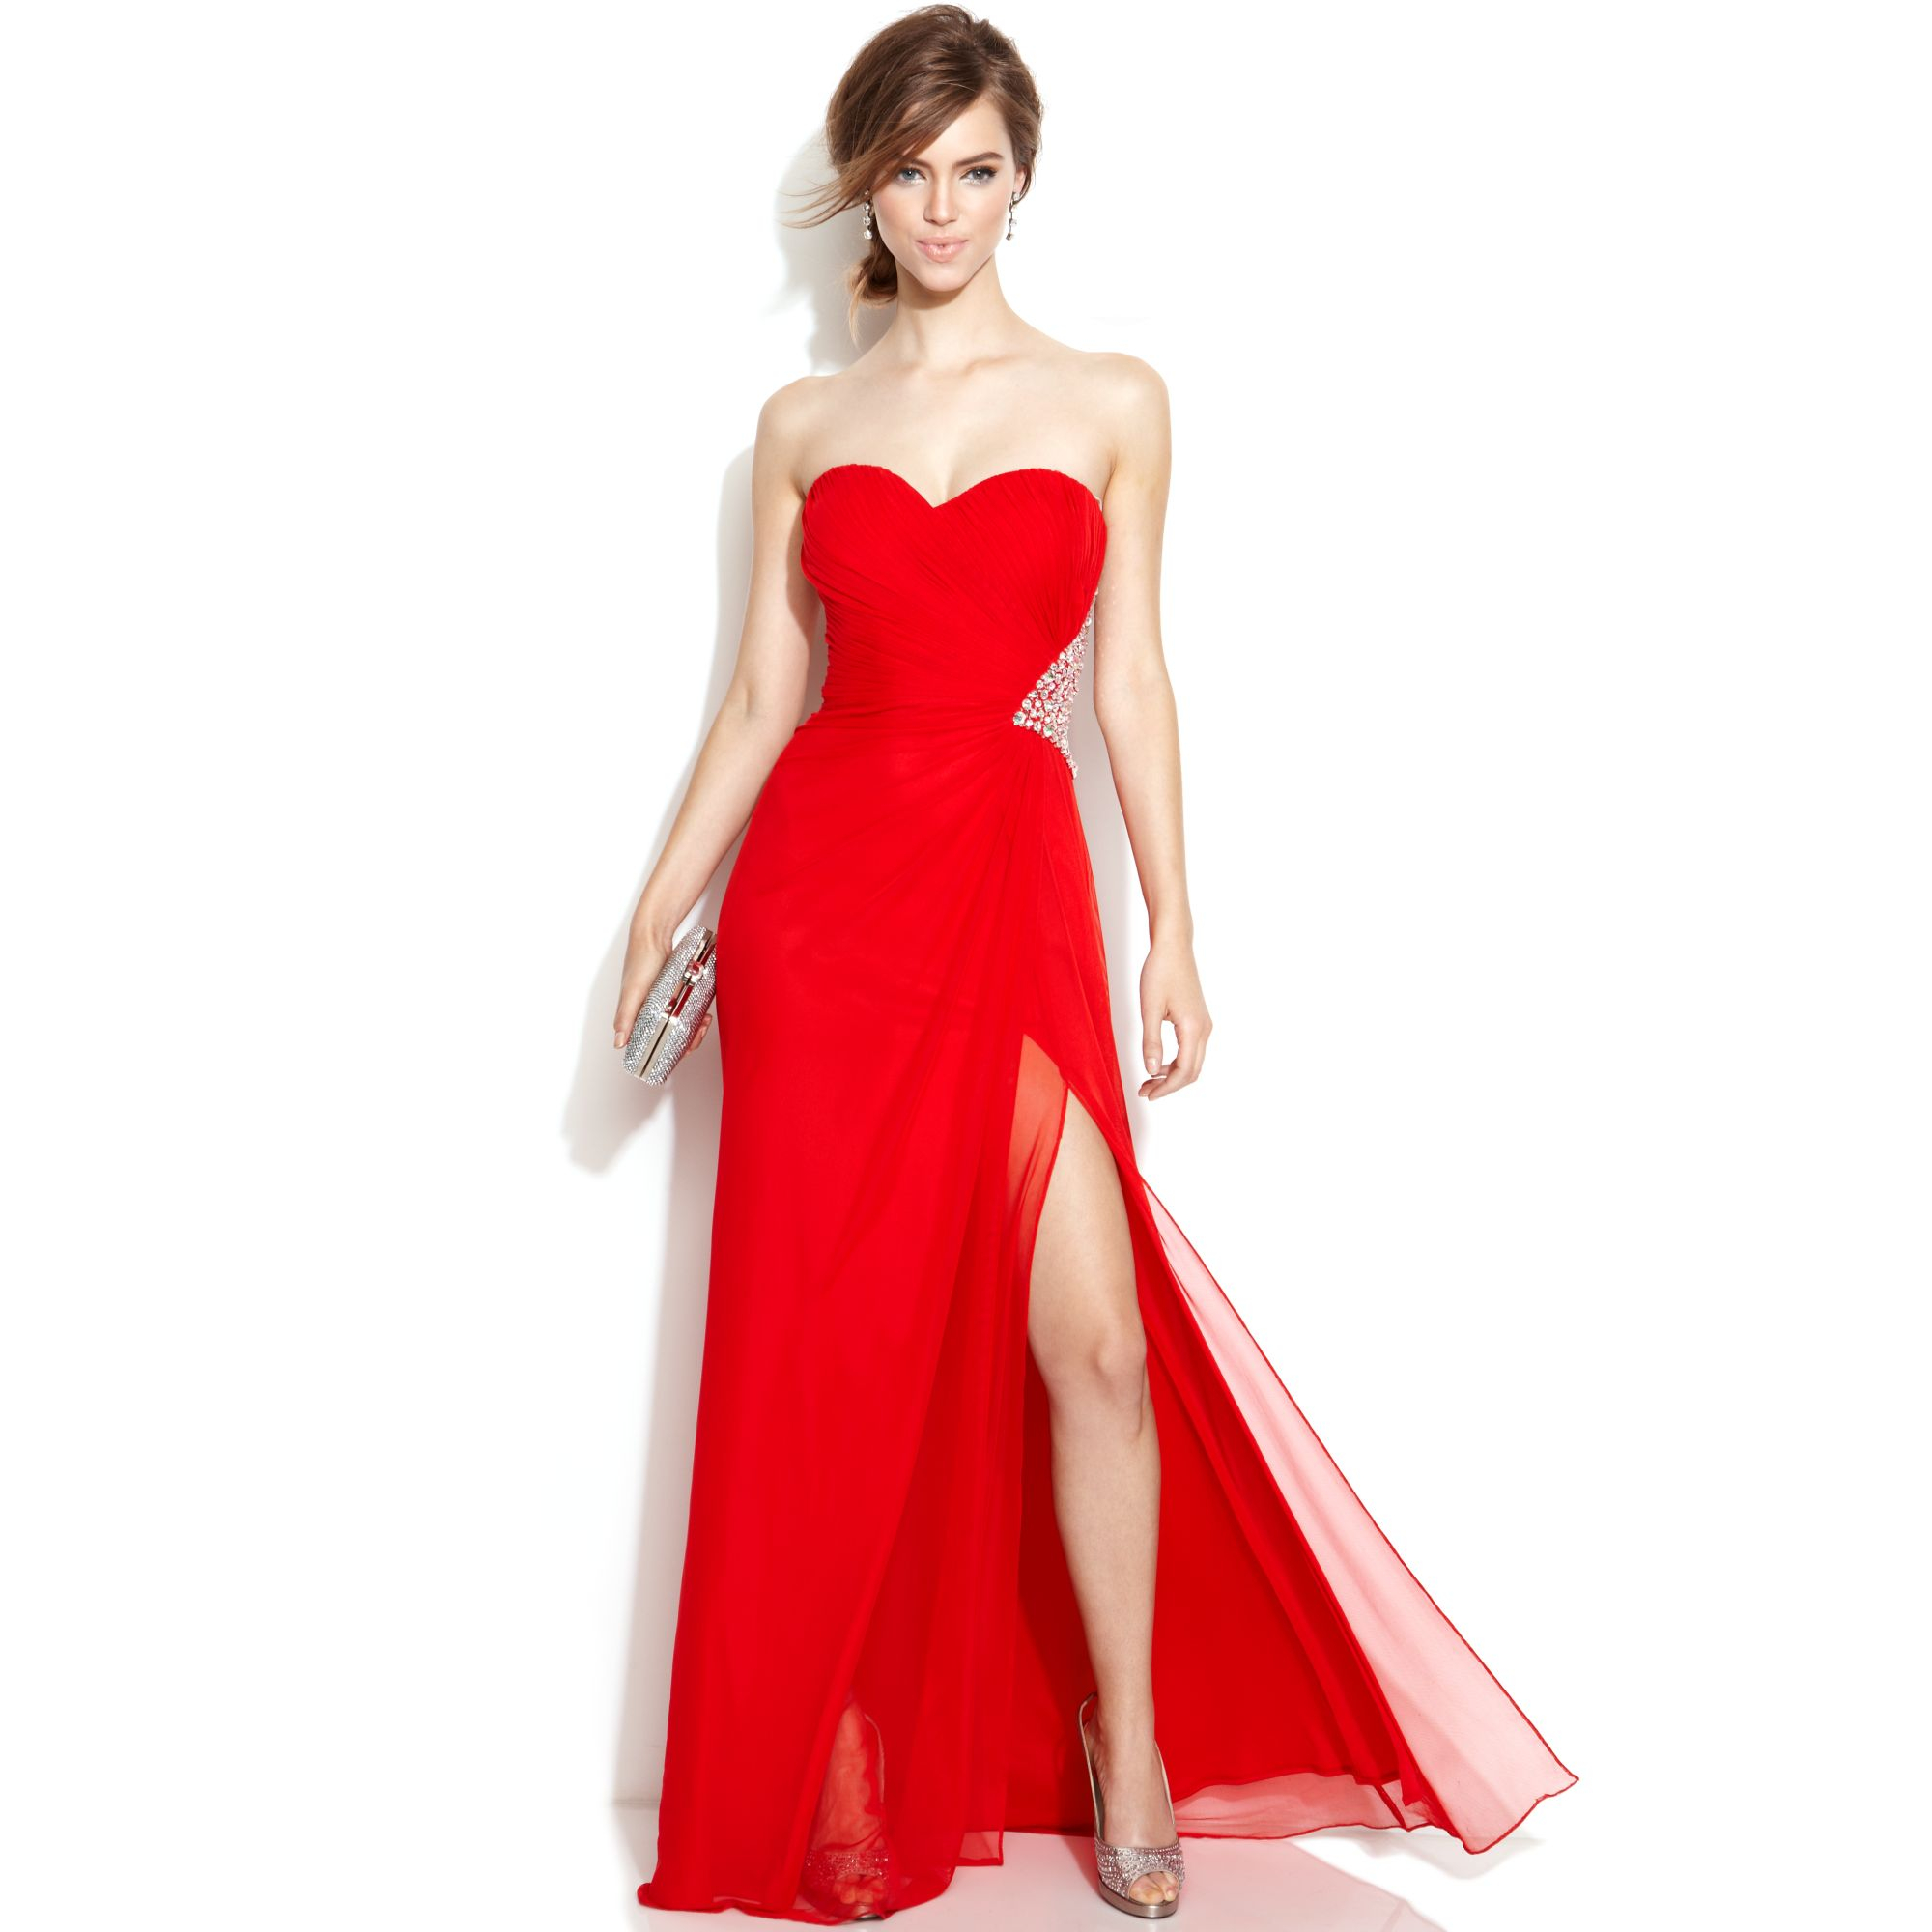 Macy Black Dress Wear To Wedding | Elegant Weddings